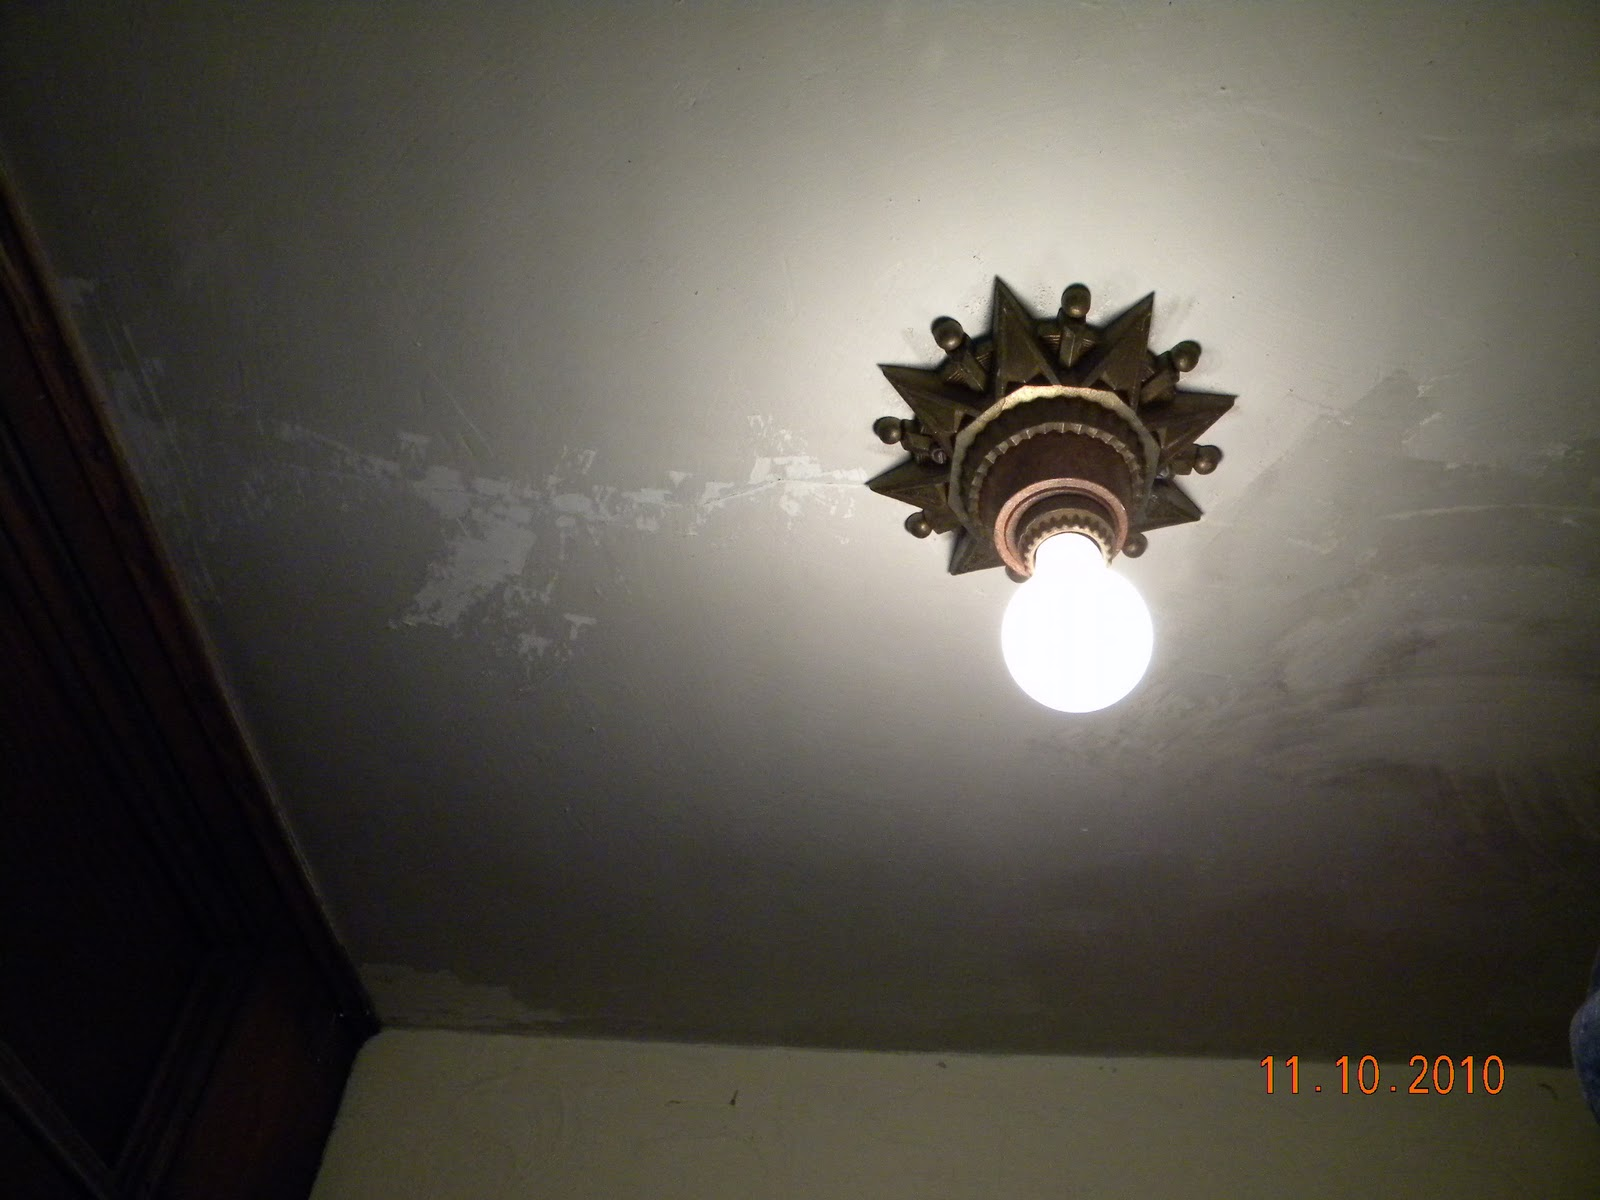 Calcimine Ceiling Repair In Quincy Massachuetts Proctor